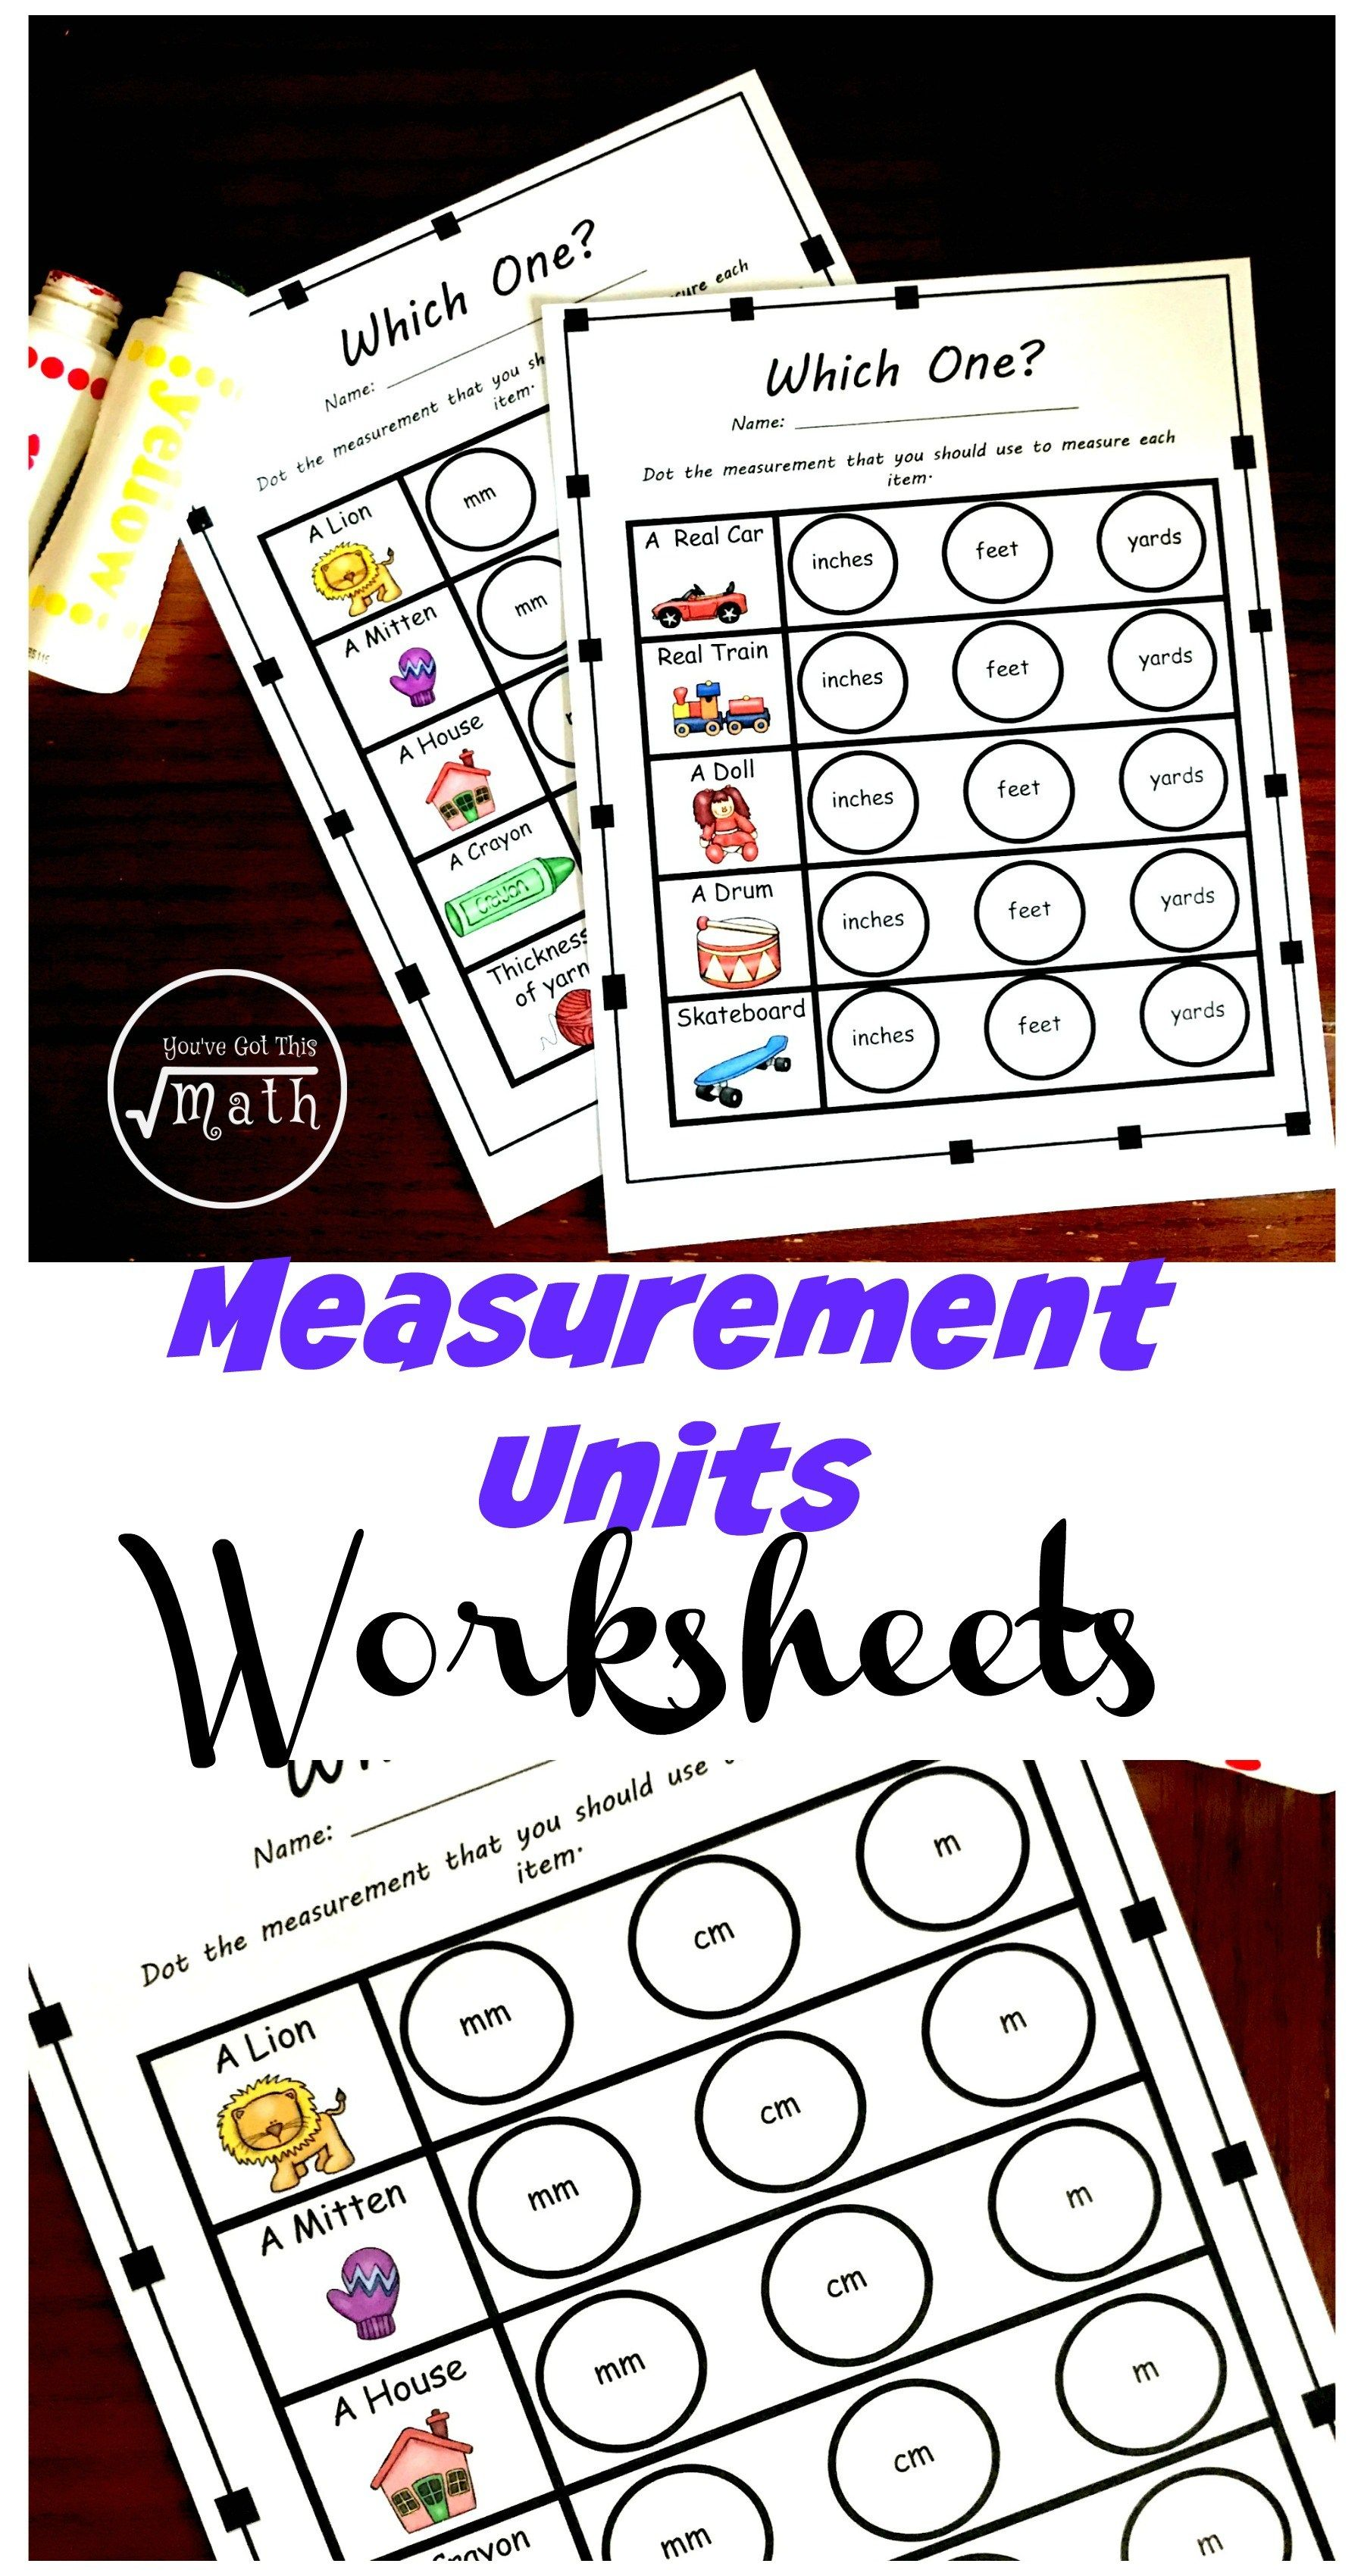 Four Measurement Tools Worksheets To Practice Choosing